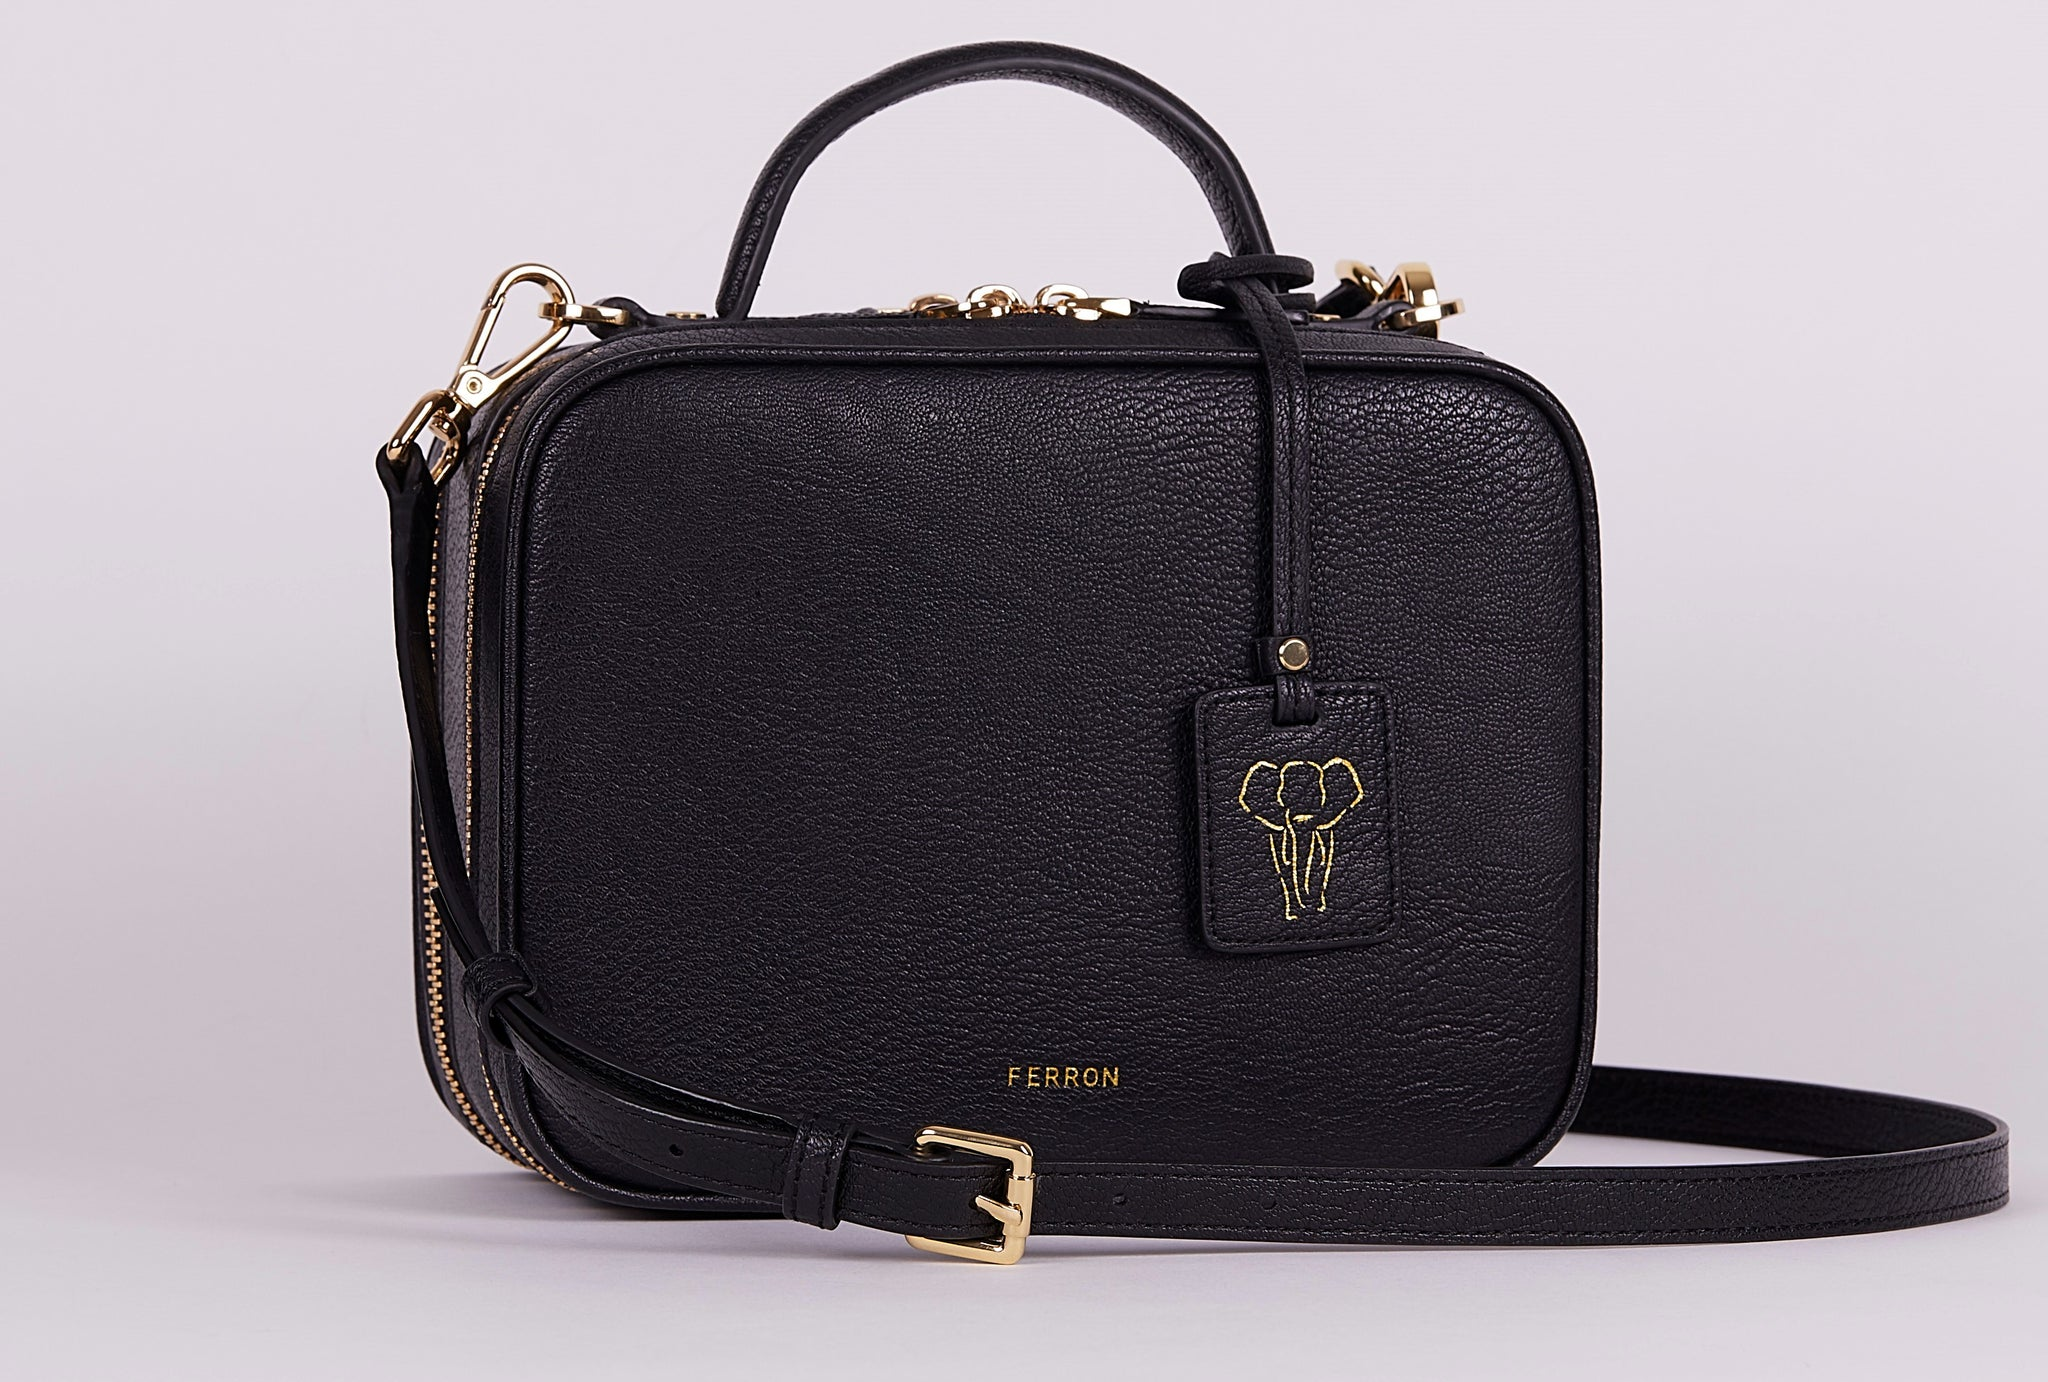 FERRON Vegan Signature Crossbody bag in black with adjustable and detachable straps